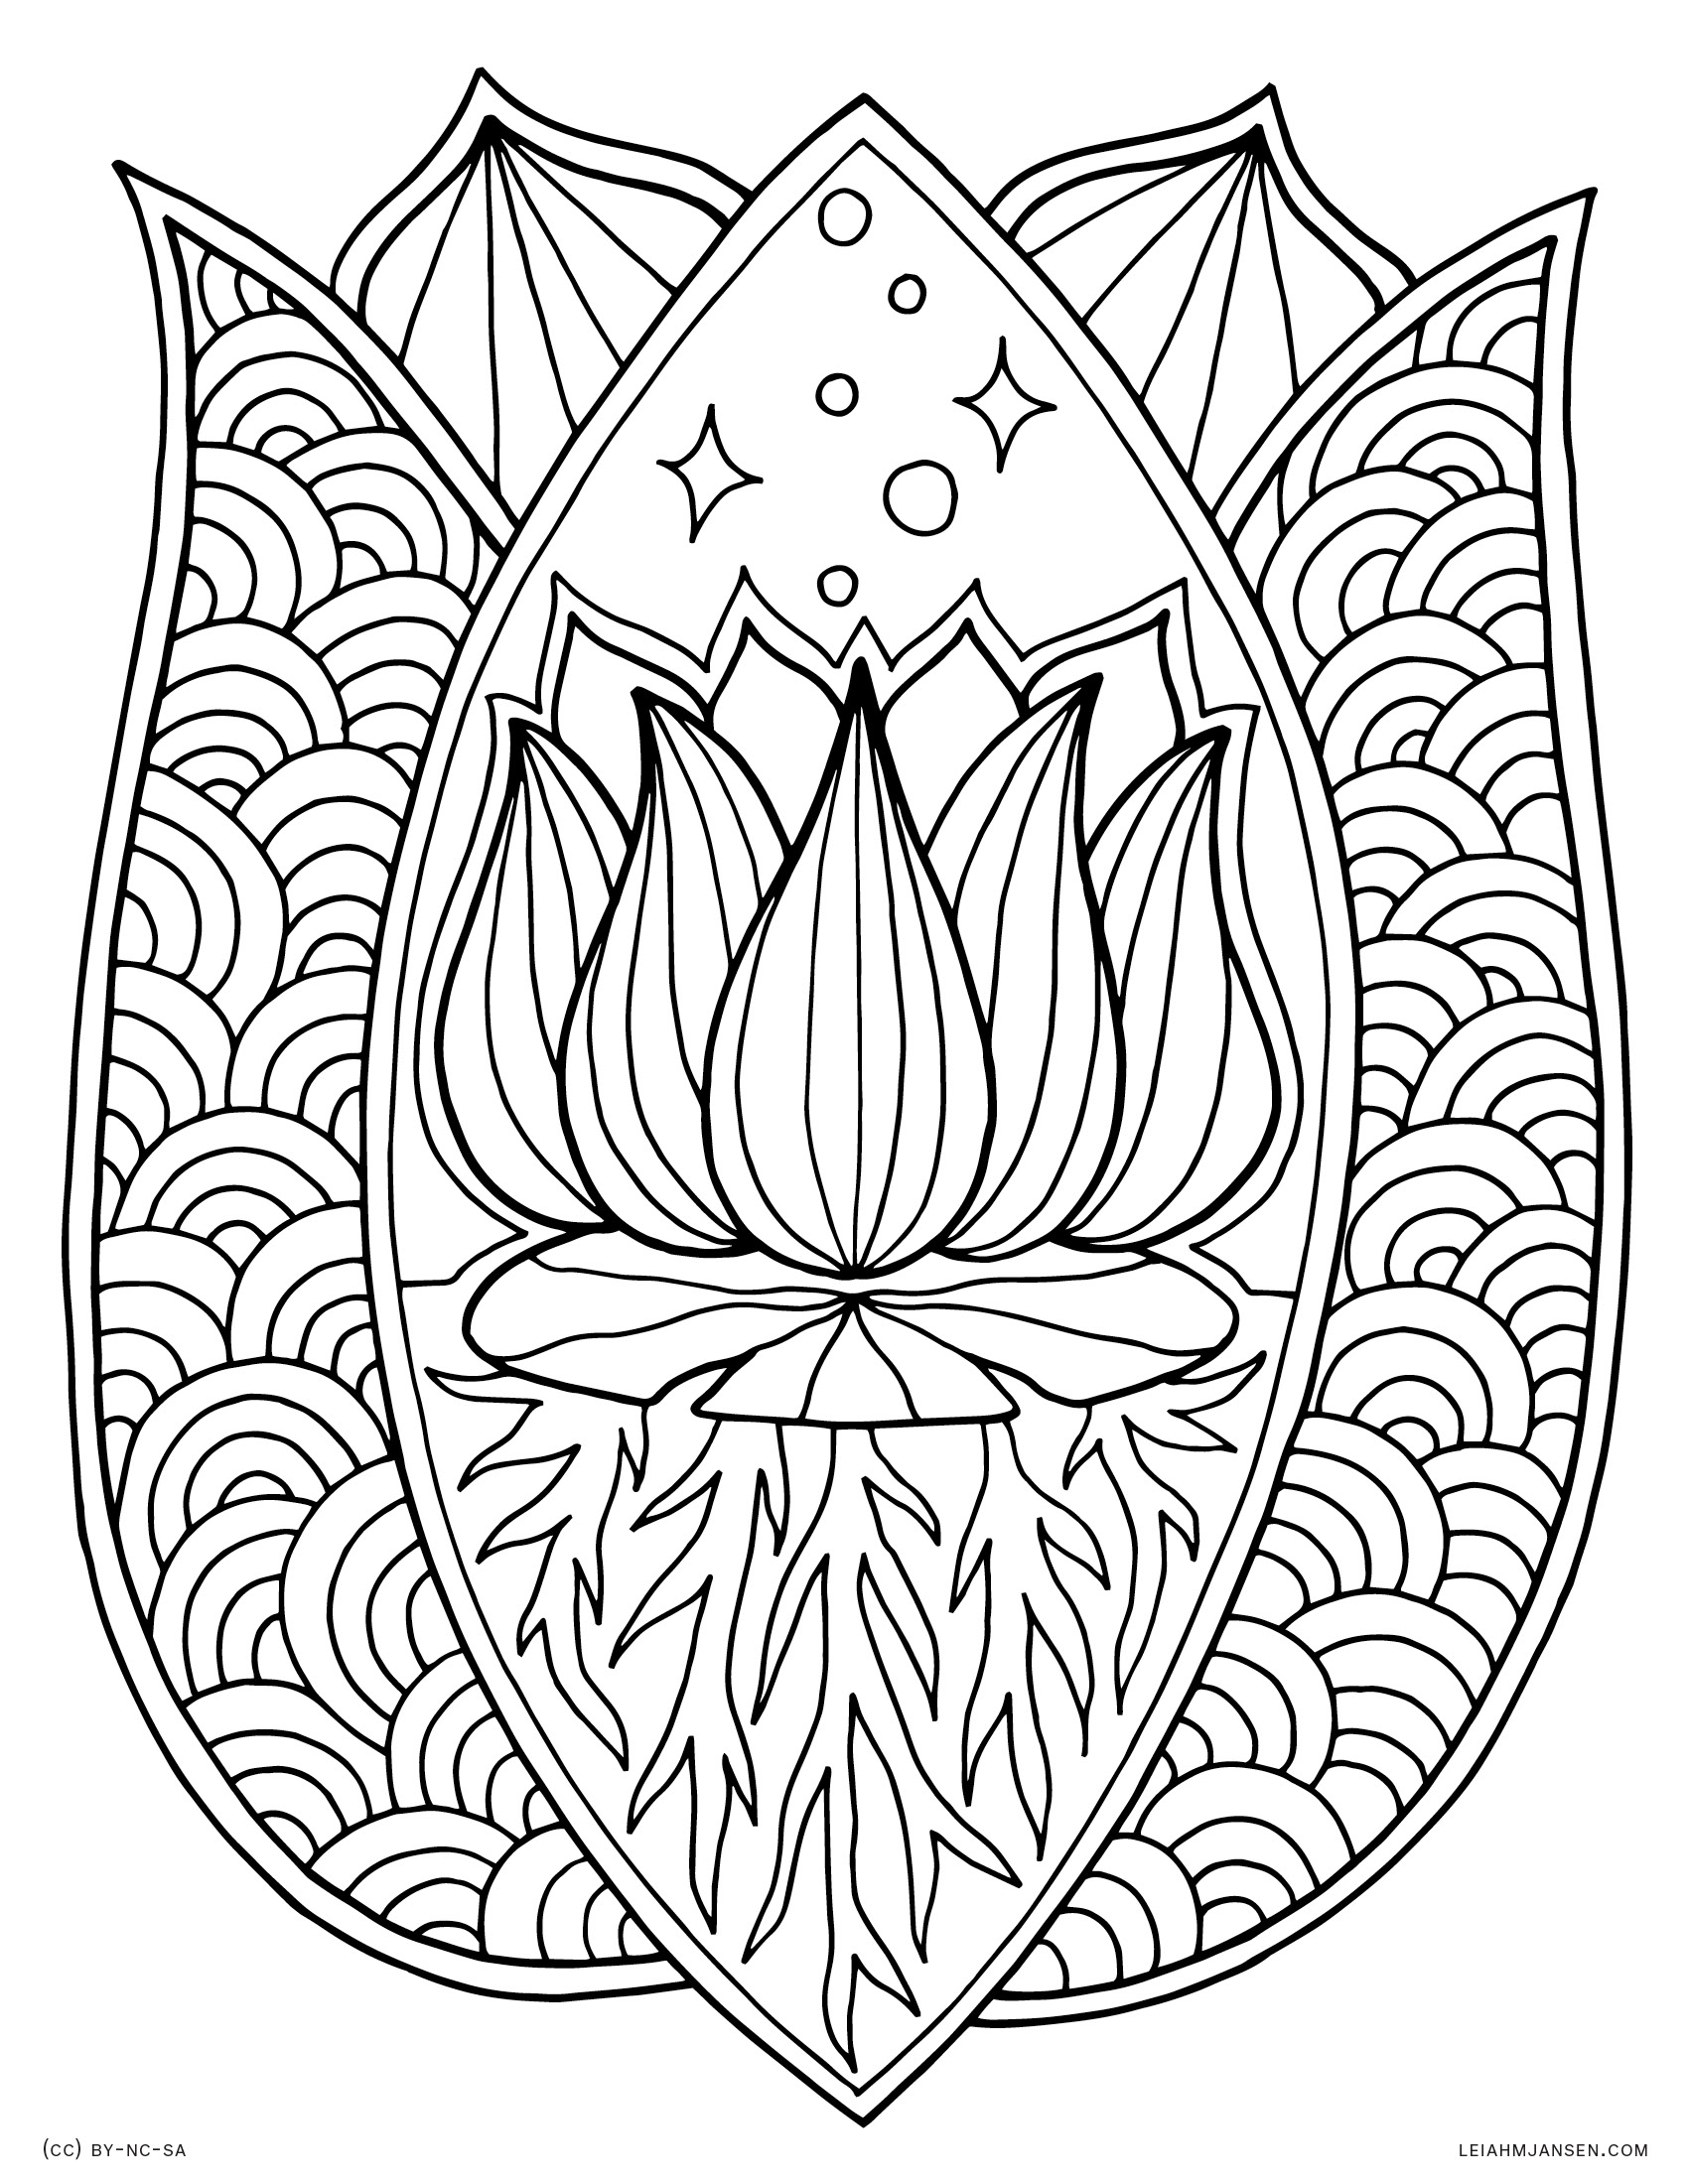 printable coloring pages for adults flowers very detailed flowers coloring pages for adults hard to printable adults for pages coloring flowers